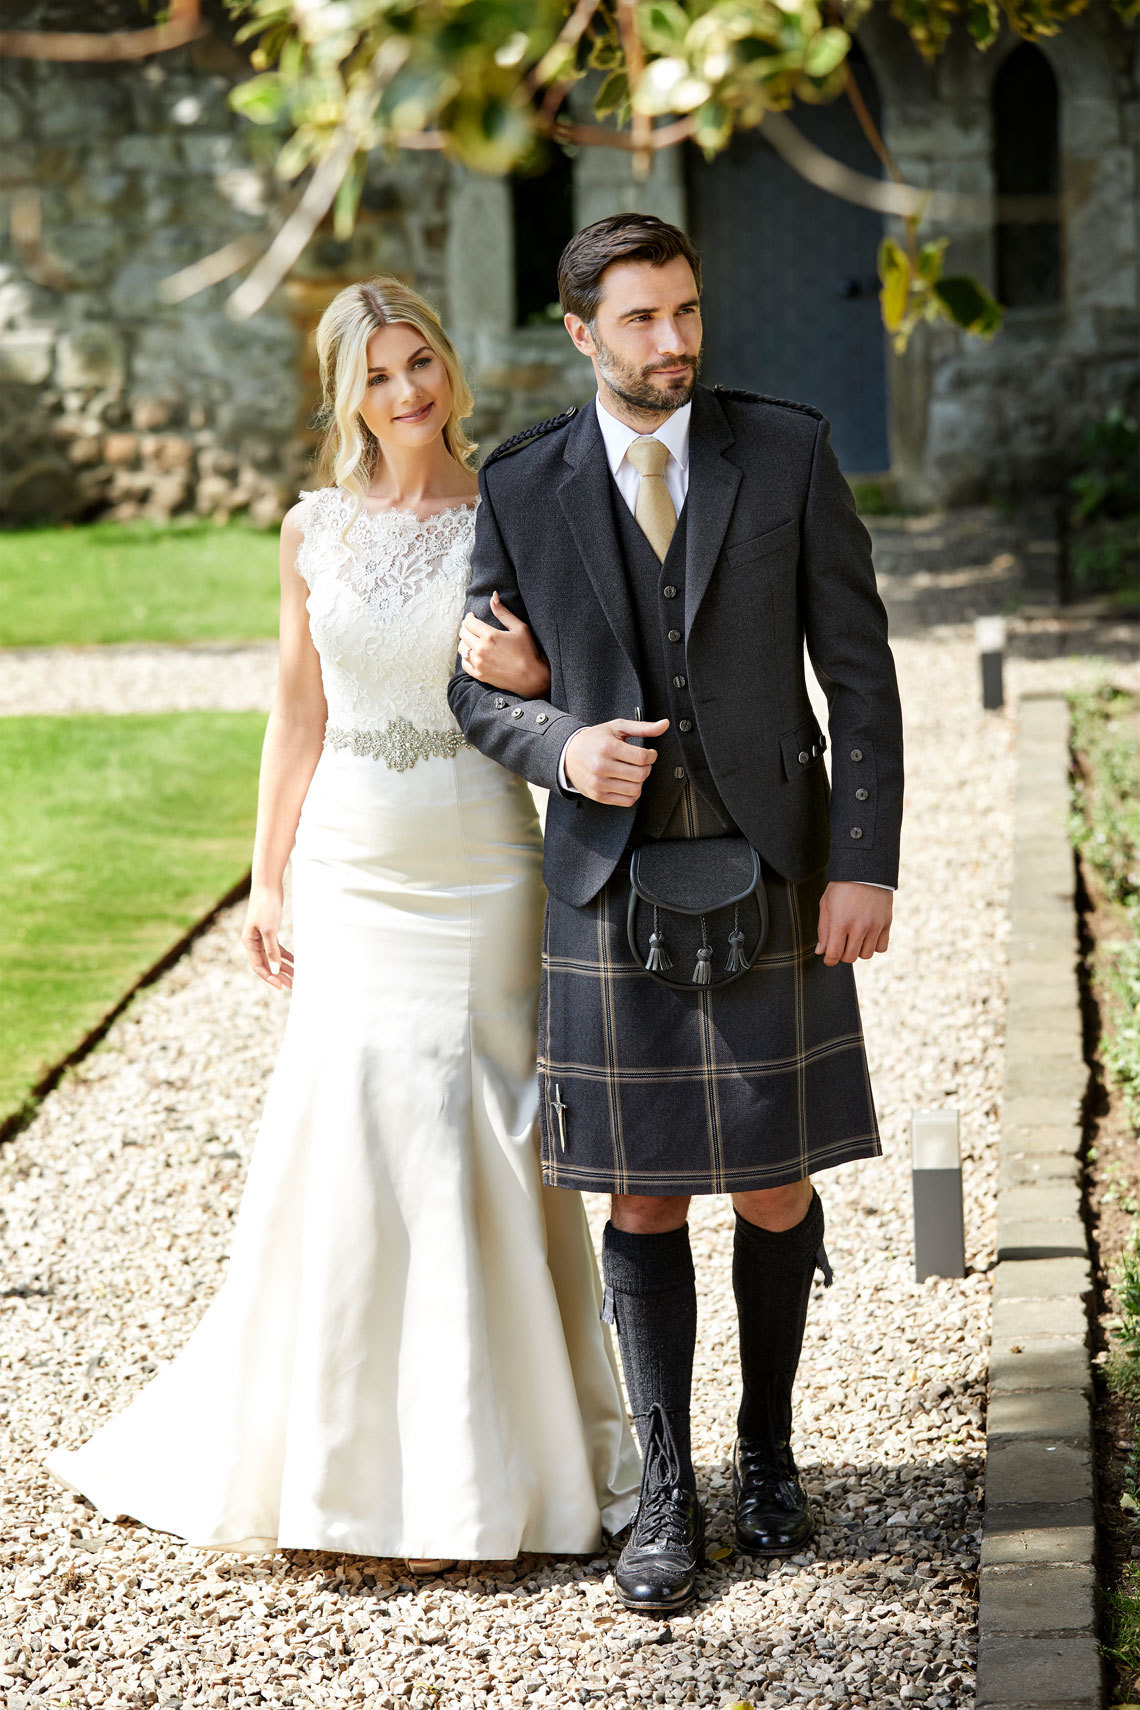 Wedding kilt packages